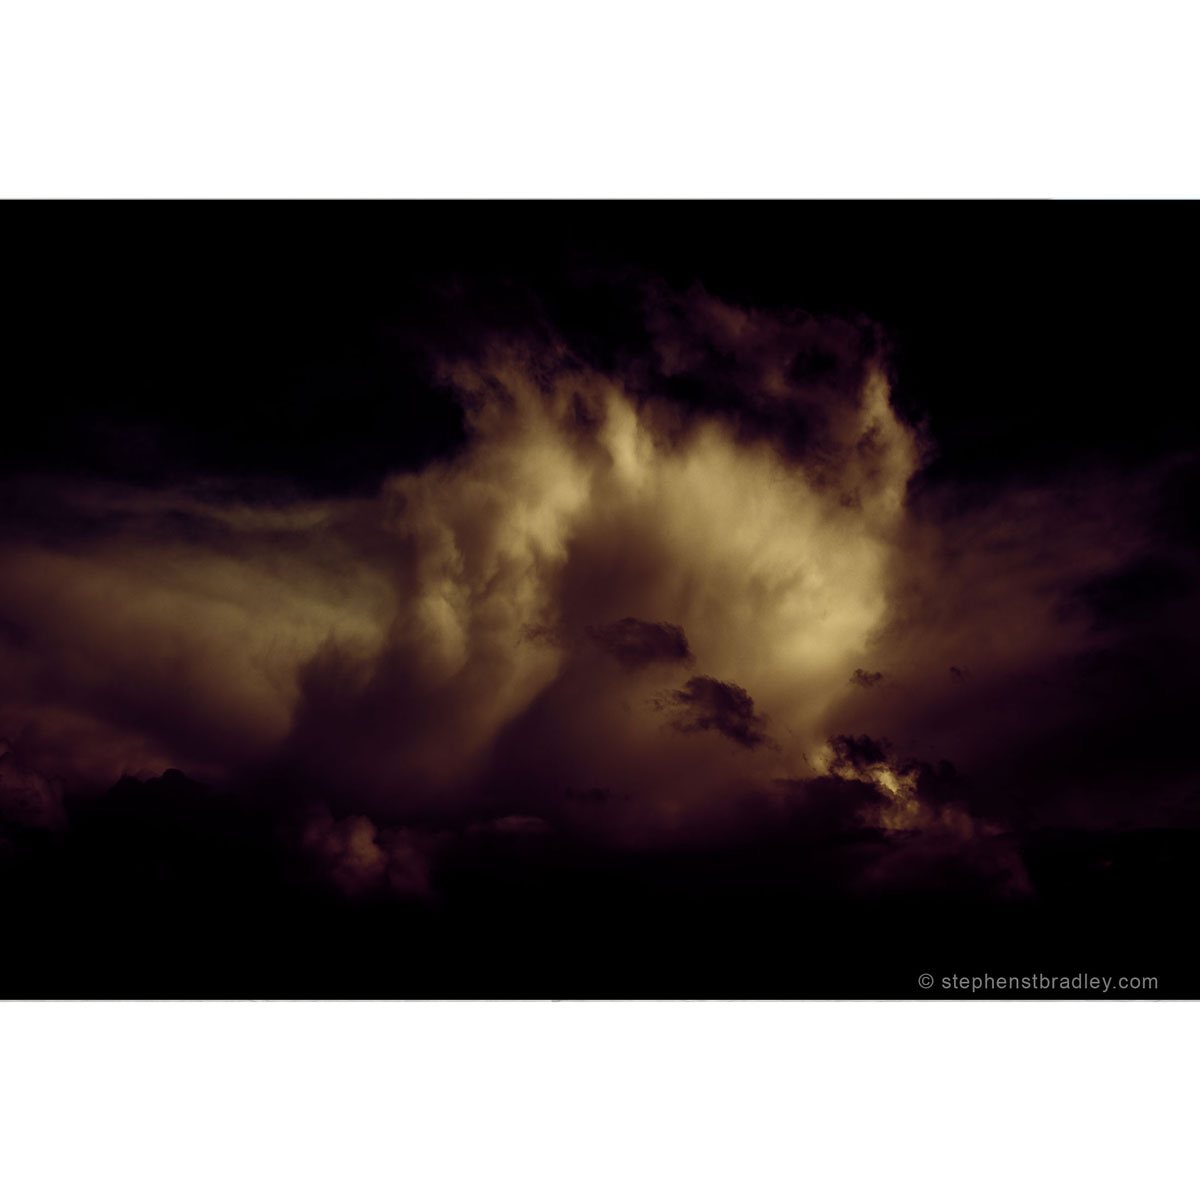 Loverly - limited edition photographic print by Stephen S T Bradley for sale by Bout Yeh